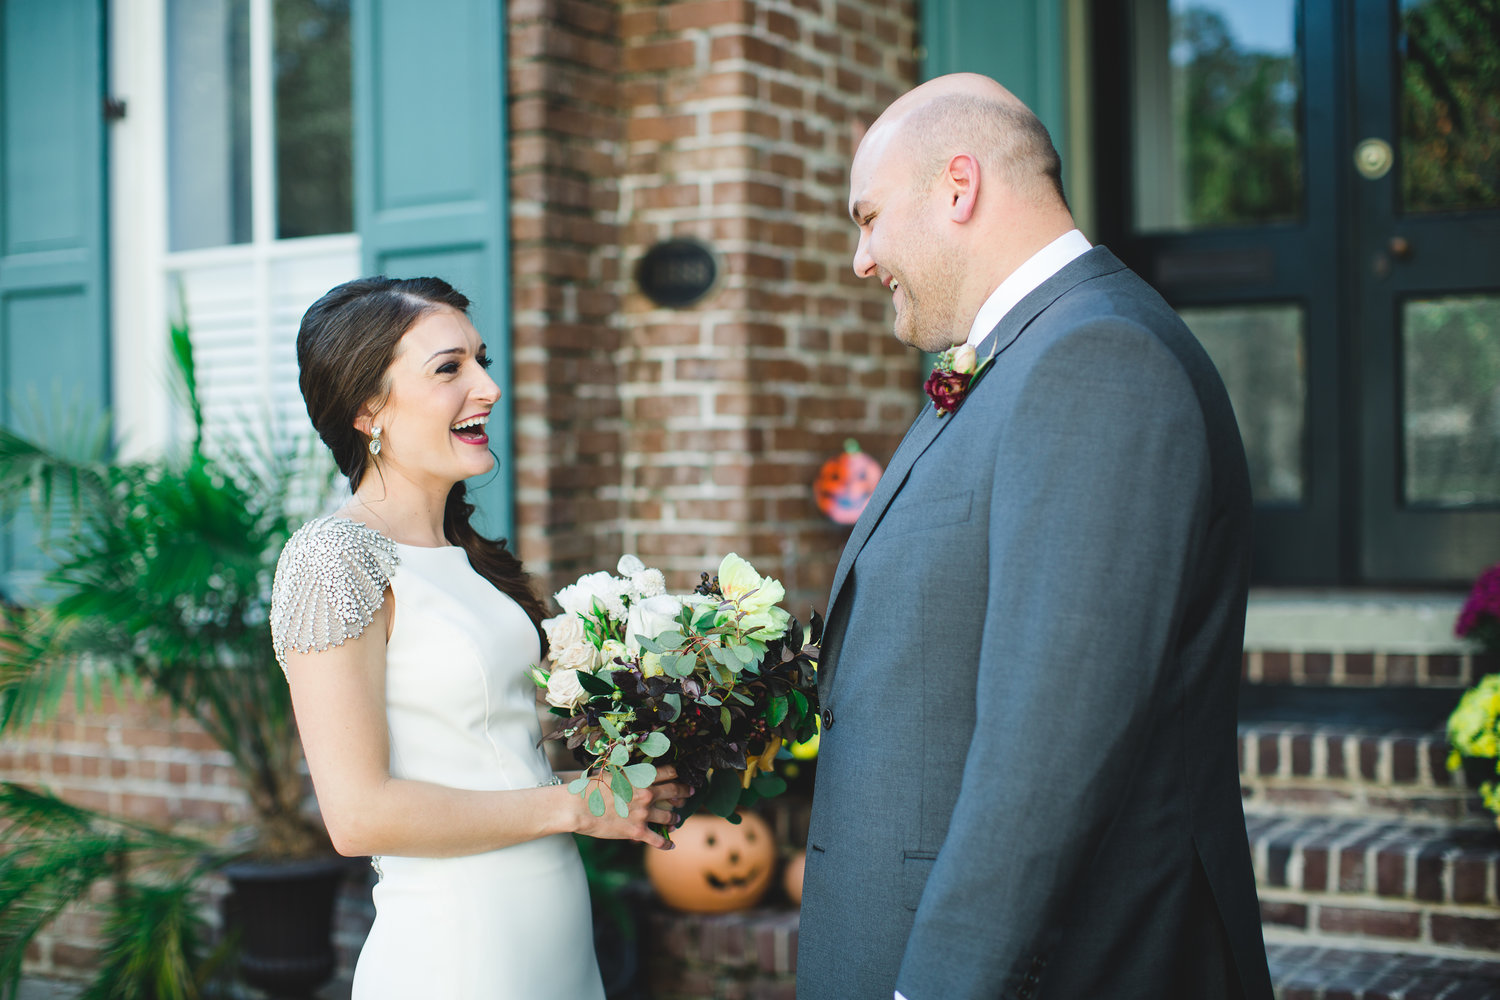 izzy-hudgins-photography-savannah-wedding-ivory-and-beau-bridal-boutique-savannah-wedding-planner-colonial-house-of-flowers-forsyth-park-wedding-old-fort-jackson-wedding-squidwed-films-savannah-boutique-savannah-weddings-11.jpg